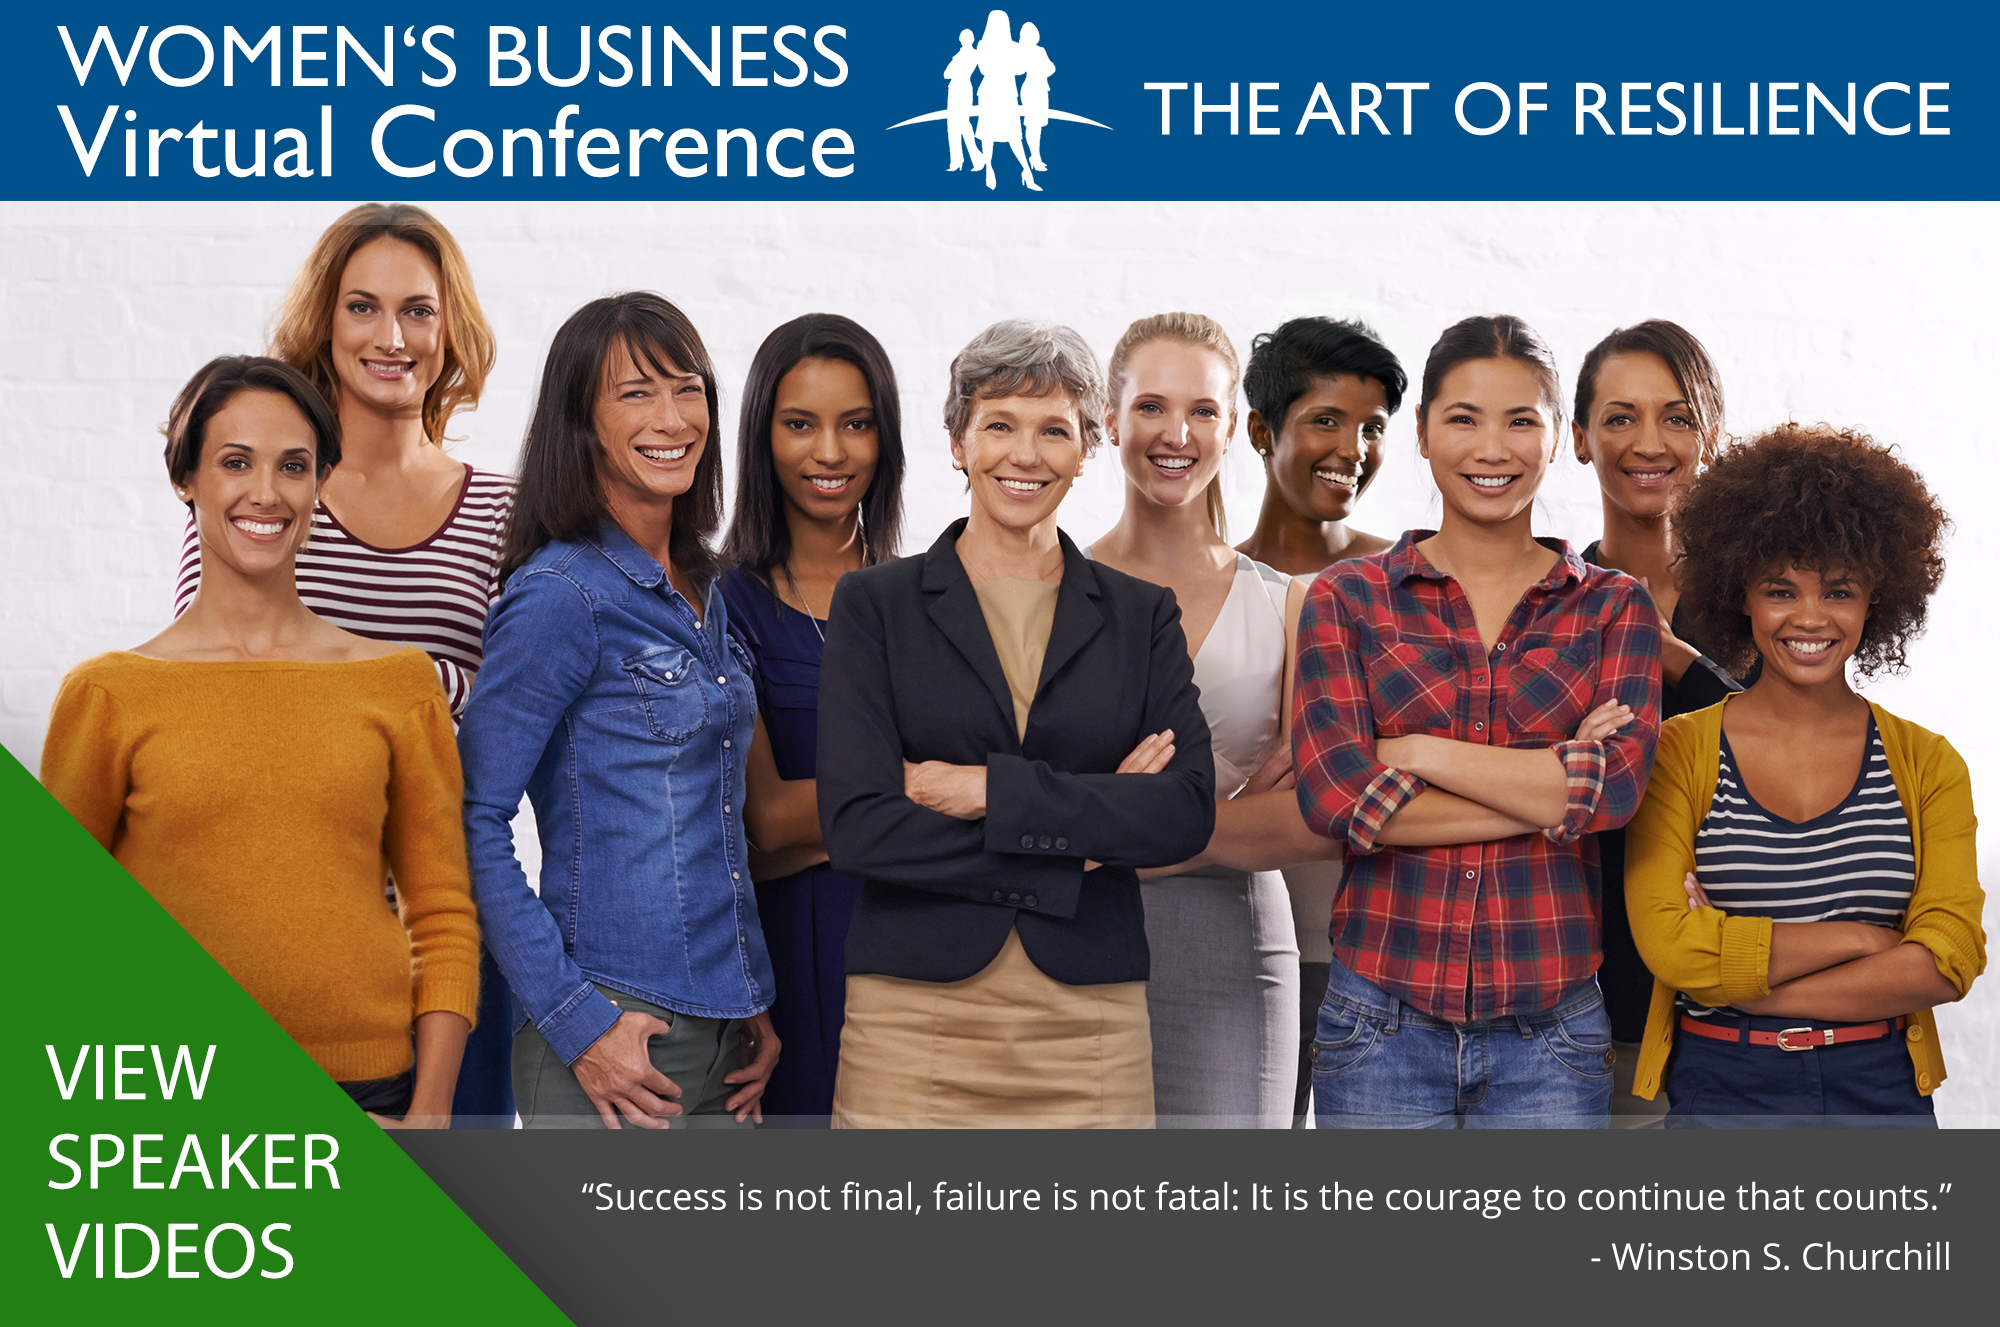 WOMEN'S BUSINESS VIRTUAL CONFERENCE